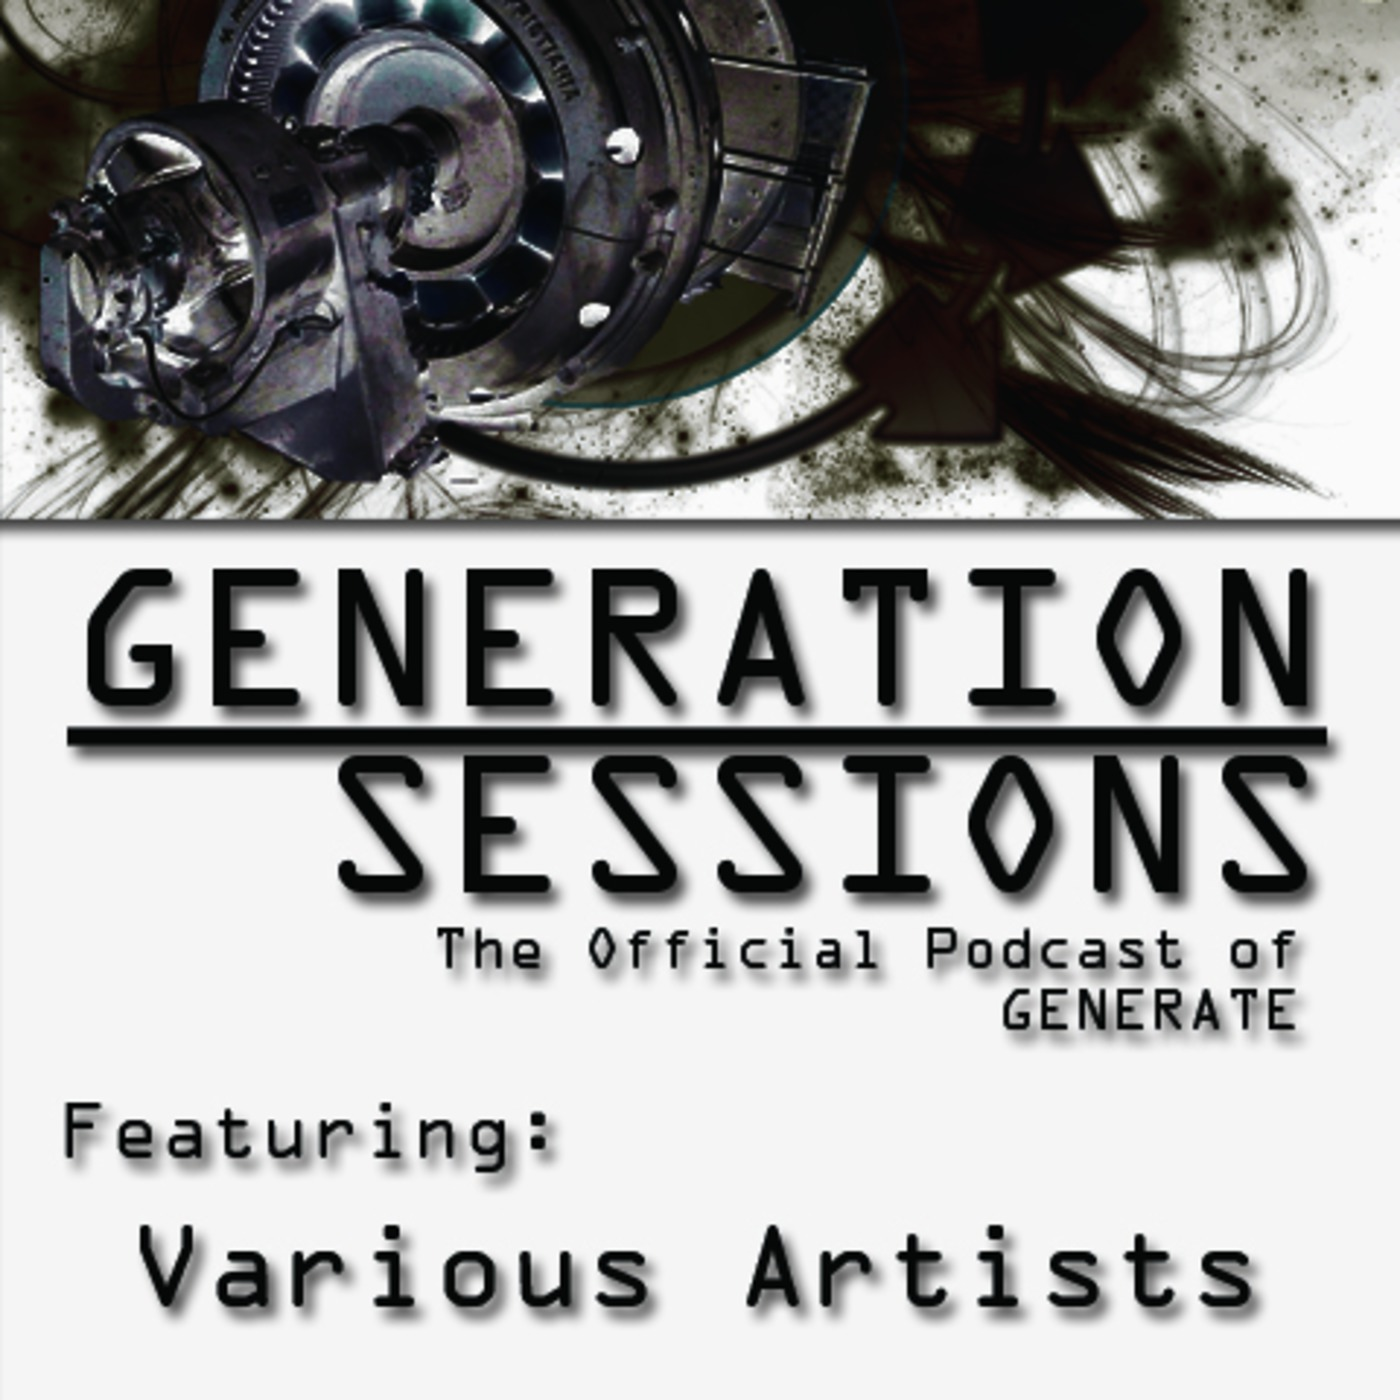 GENERATION SESSIONS Podcast